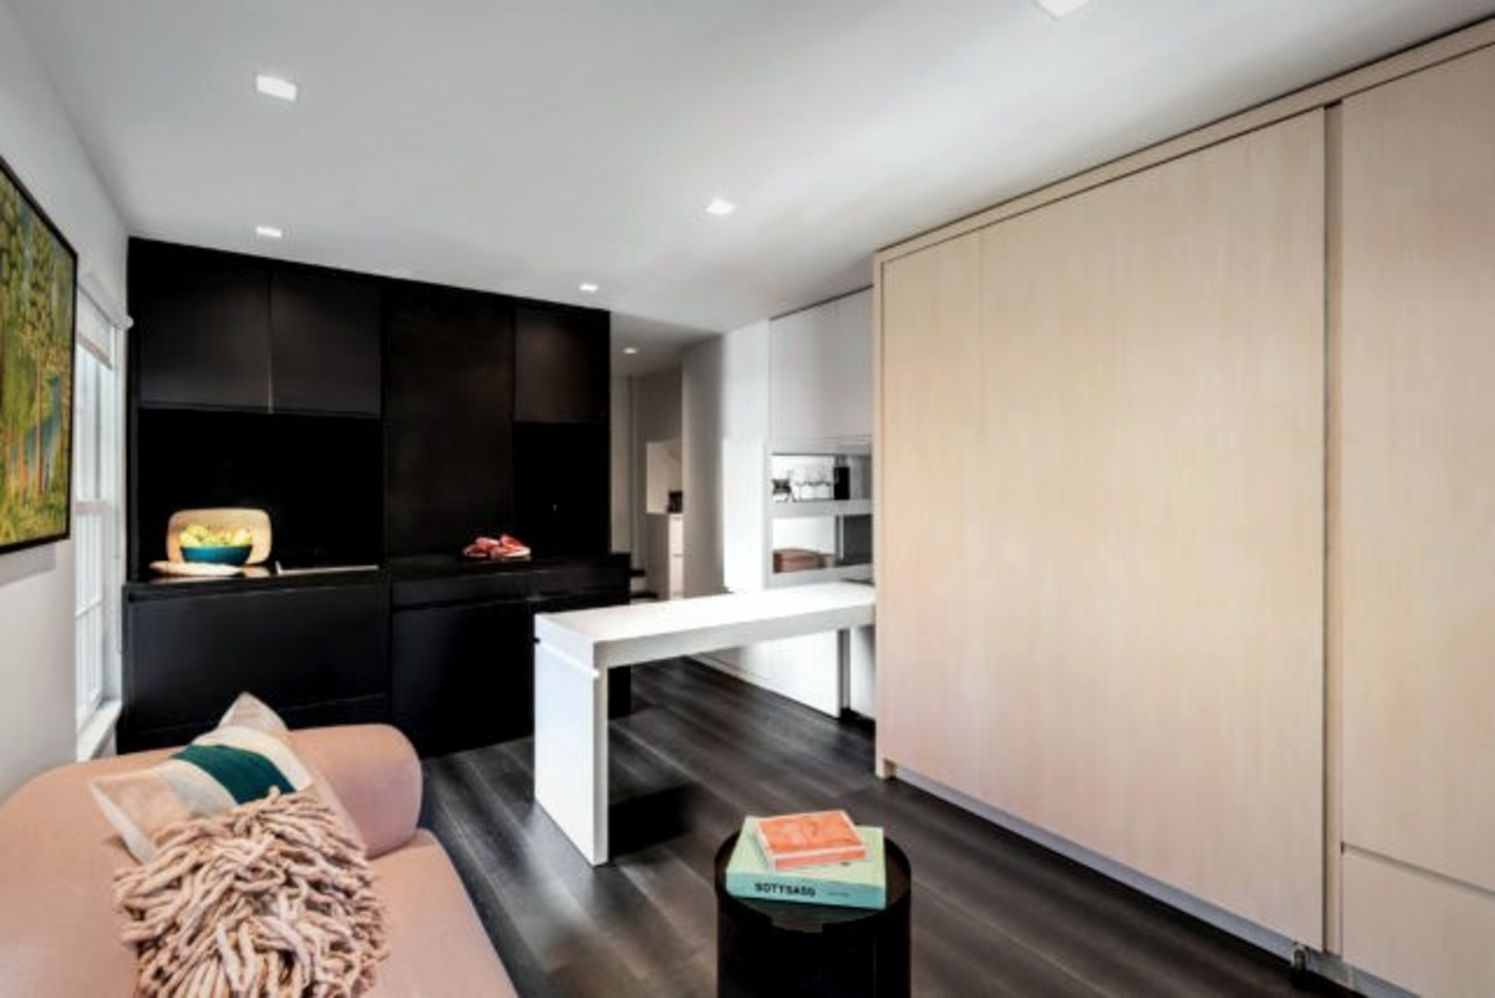 https://elonahome.com/wp-content/uploads/2020/12/Small-attic-transformation-project-by-MKCA-converting-small-space-into-functional-place-for-living-7.jpg